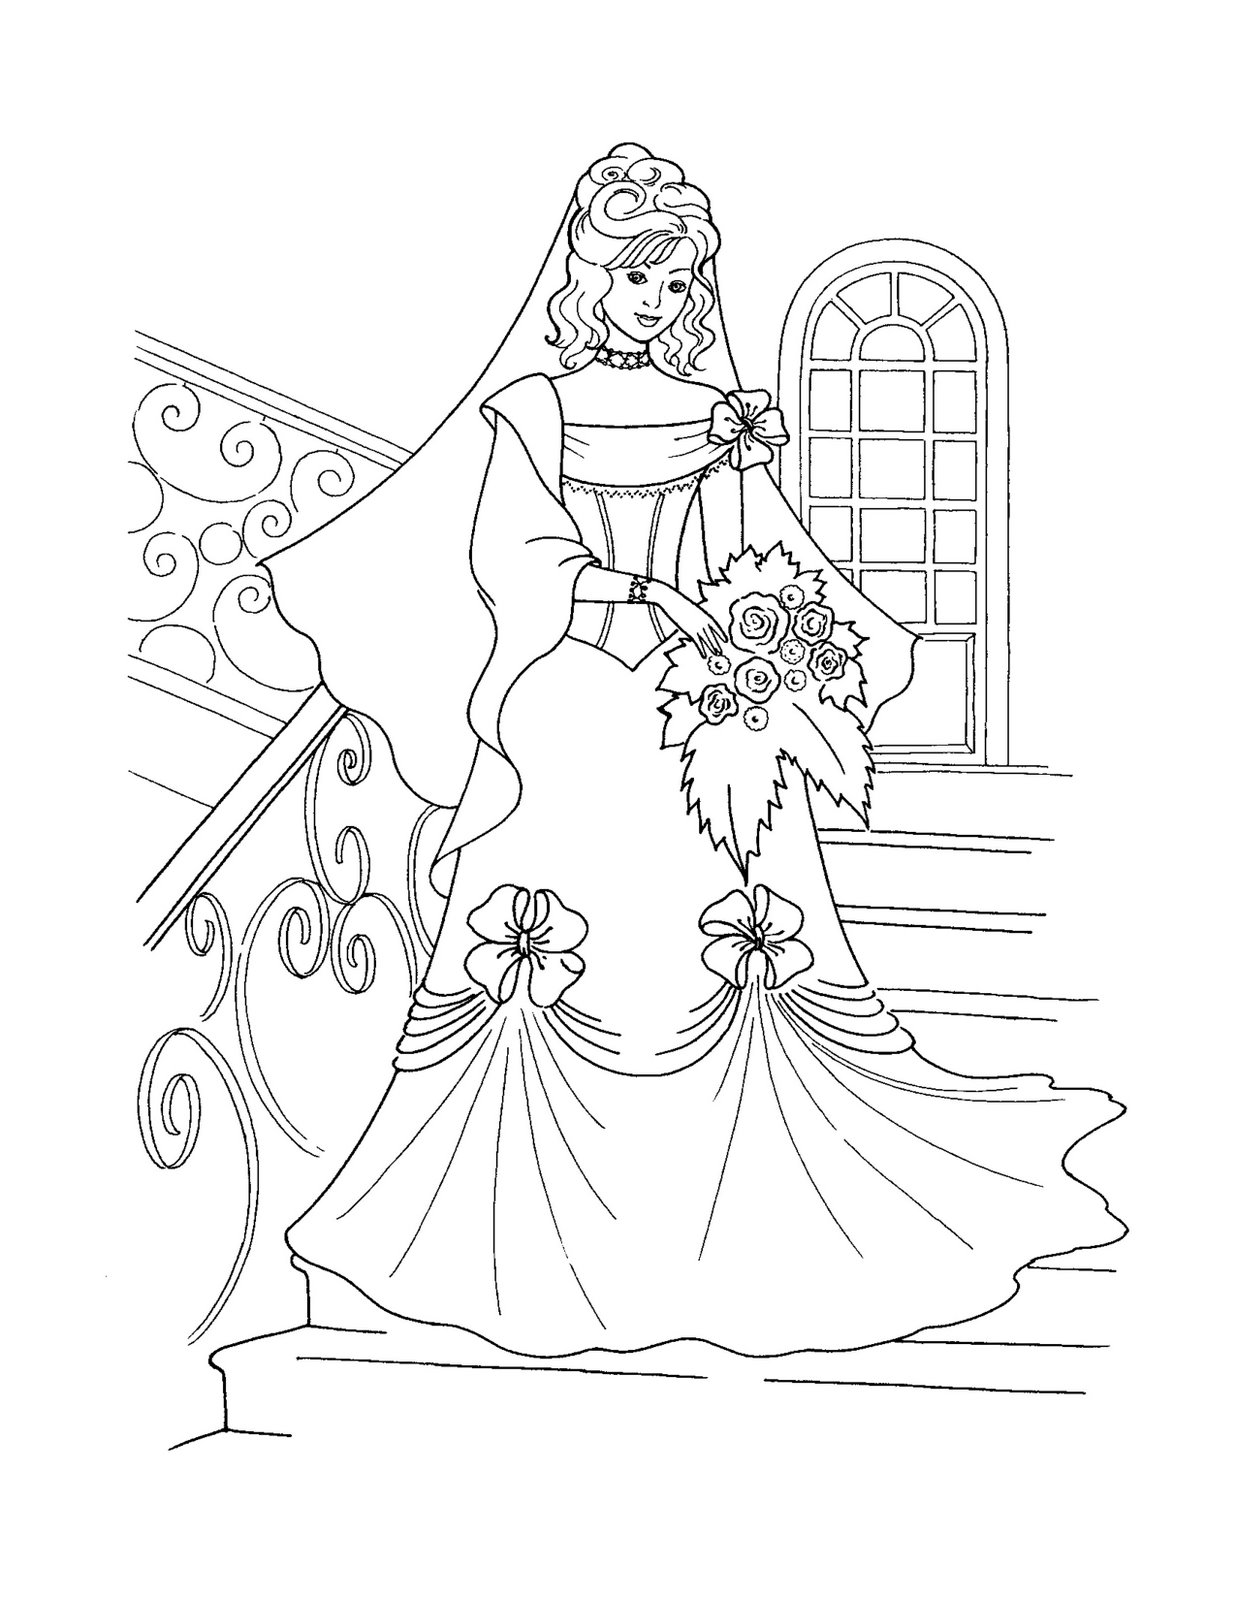 Free printable disney princess coloring pages for kids for Coloring pages wedding